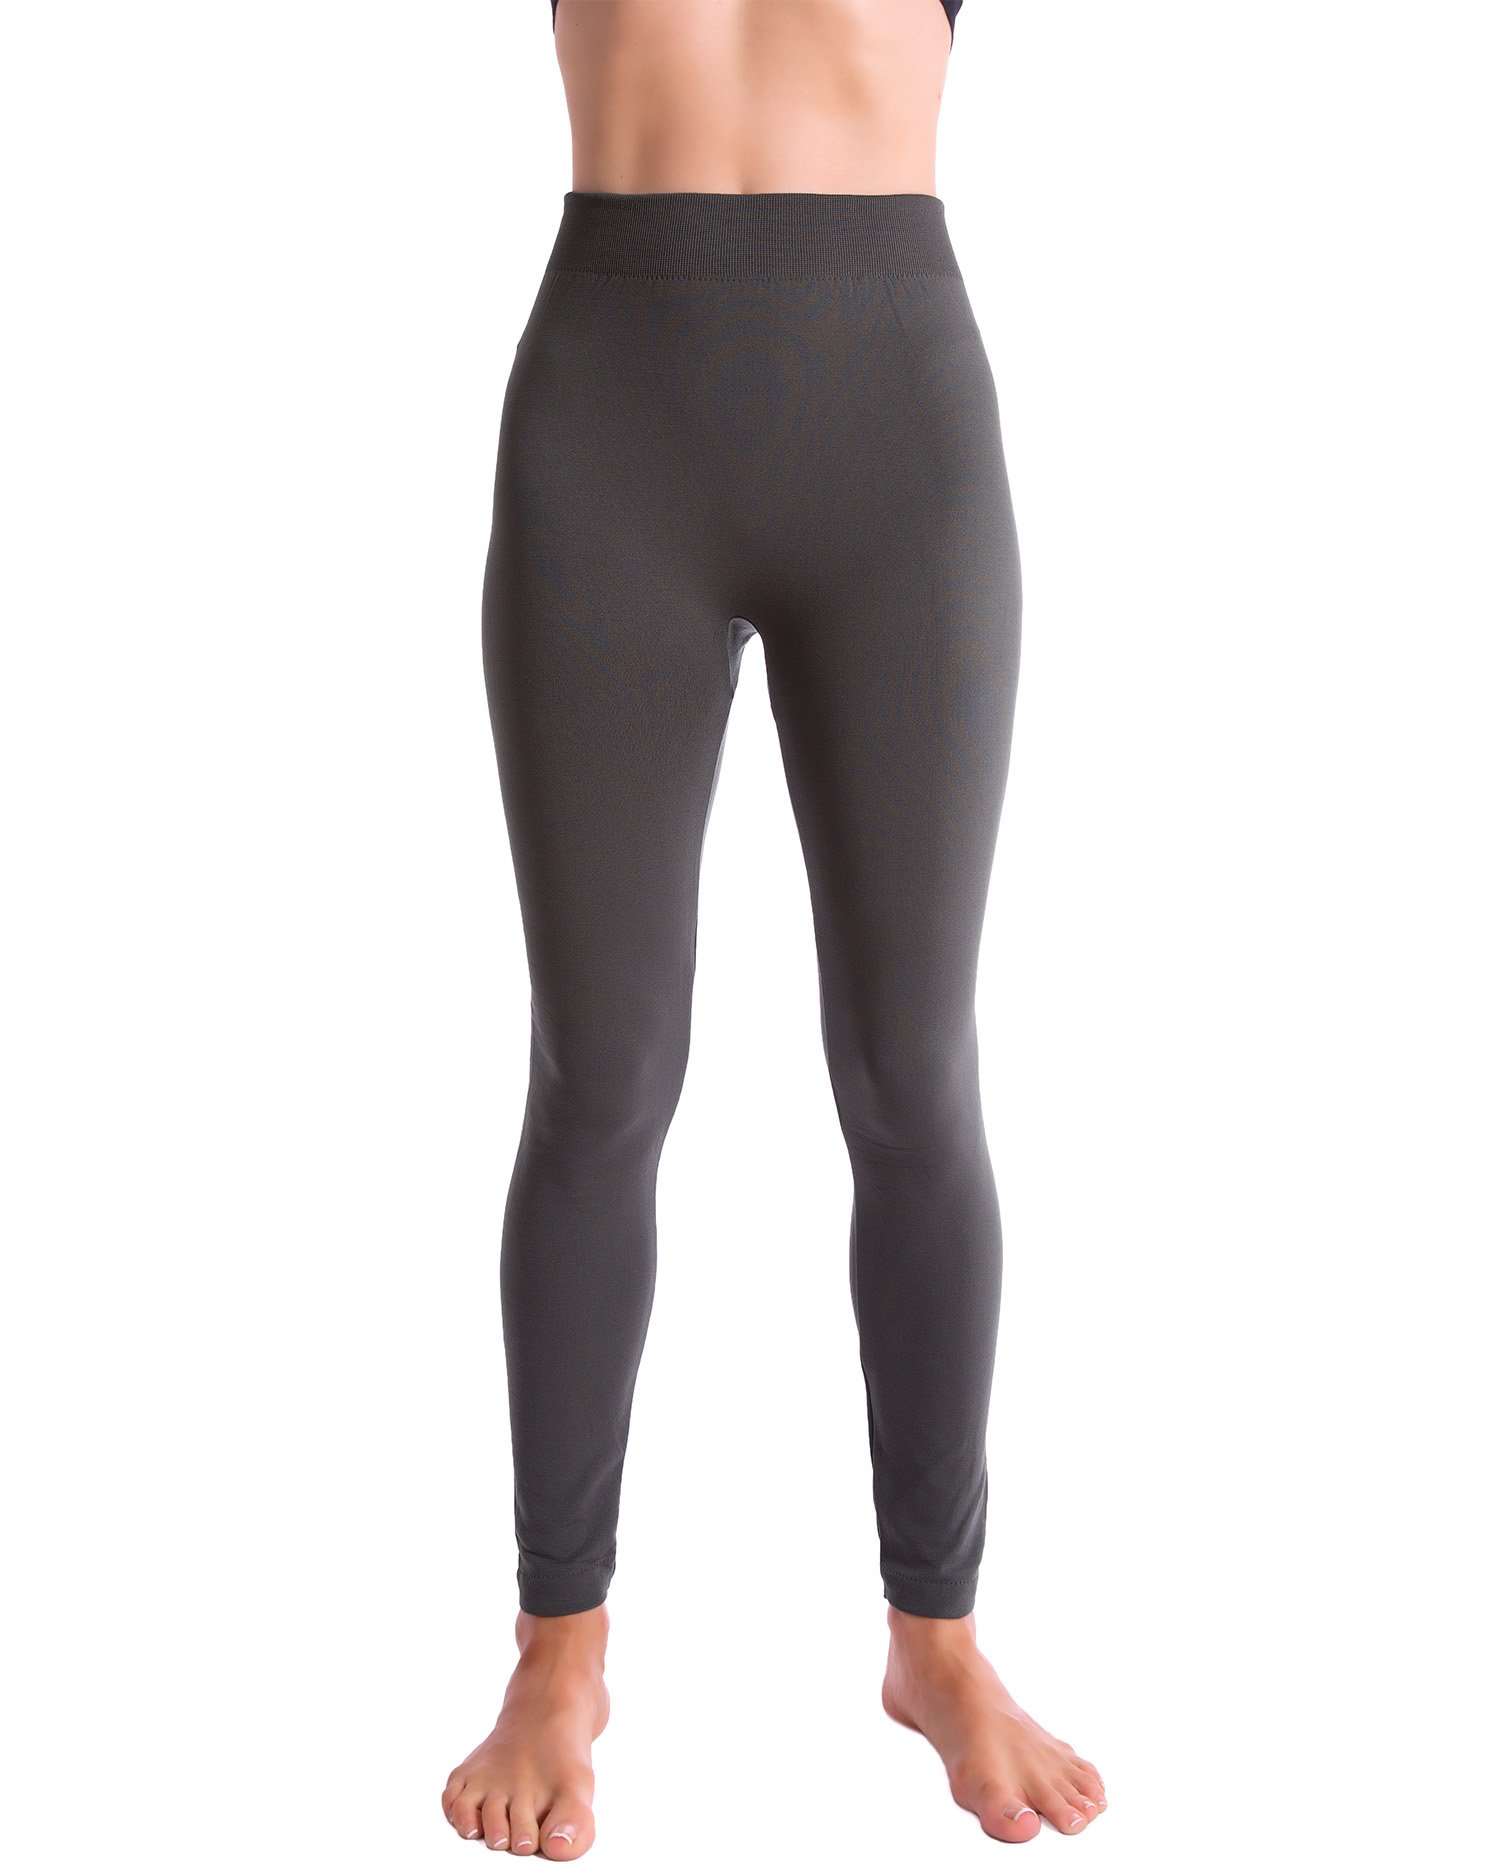 3-Pack Fleece Lined Thick Brushed Leggings by Homma (S/M/L, BLACK/NAVY/GREY) by Homma (Image #1)